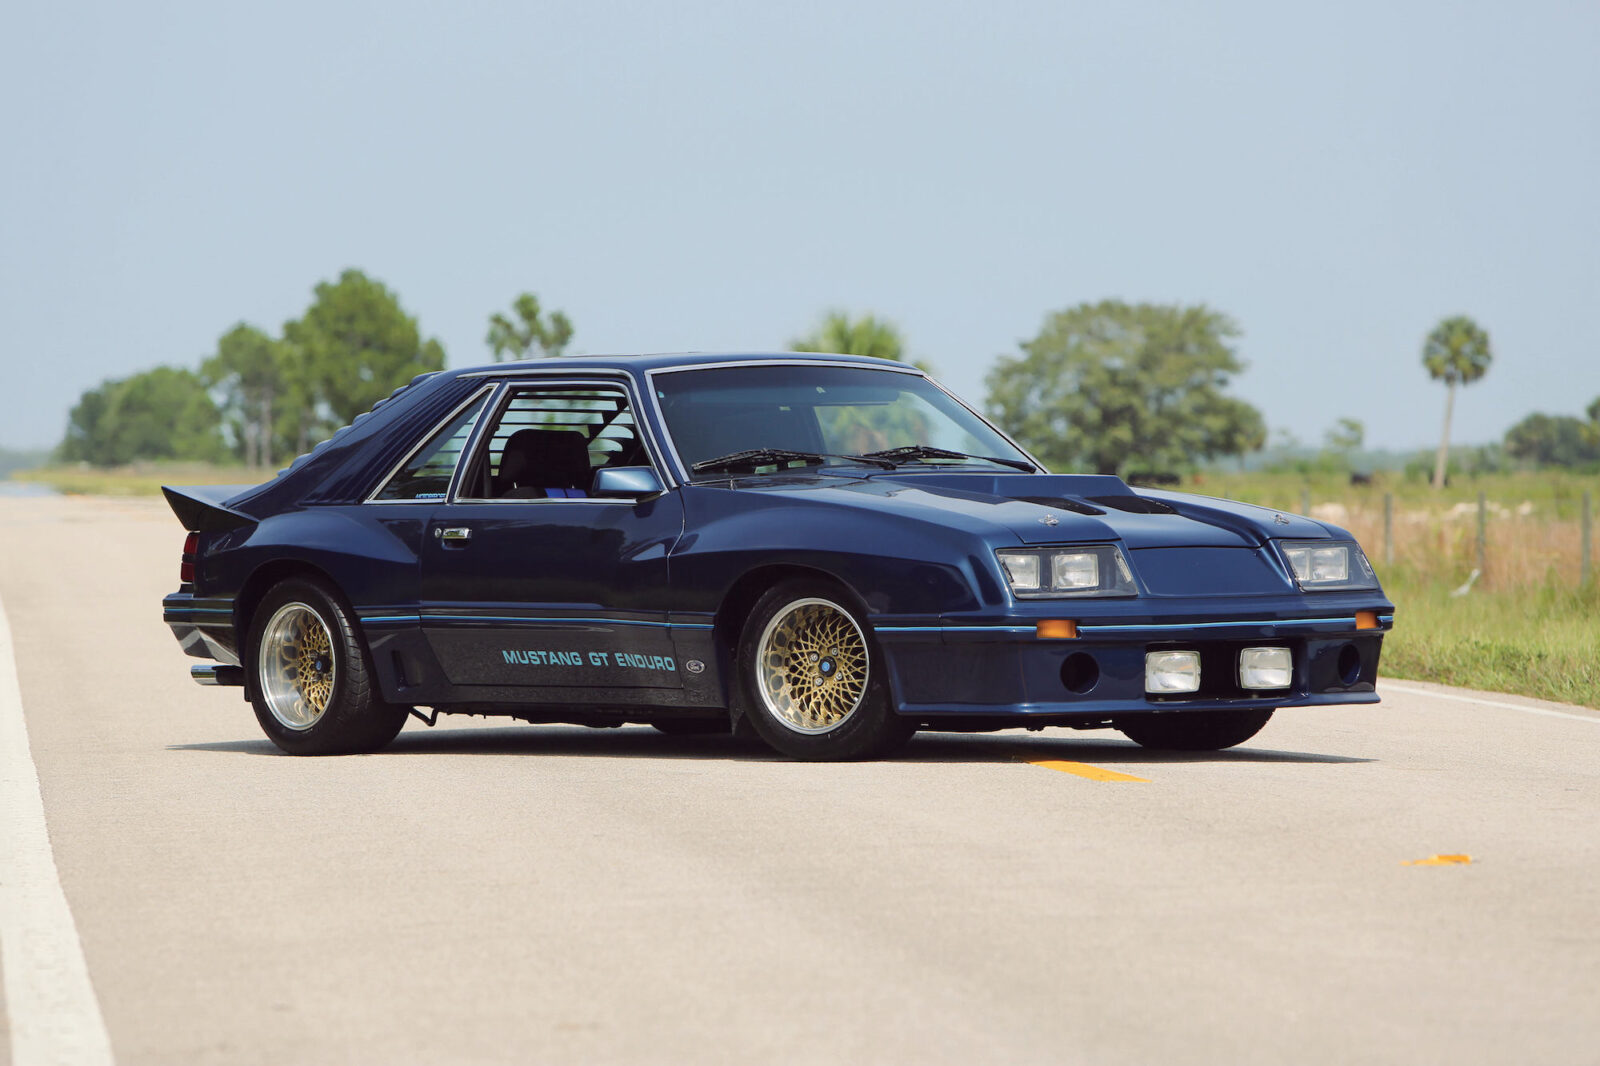 1982 ford mustang gt enduro prototype coupe rh silodrome com Mustang Rear Differential 1966 Mustang Differential